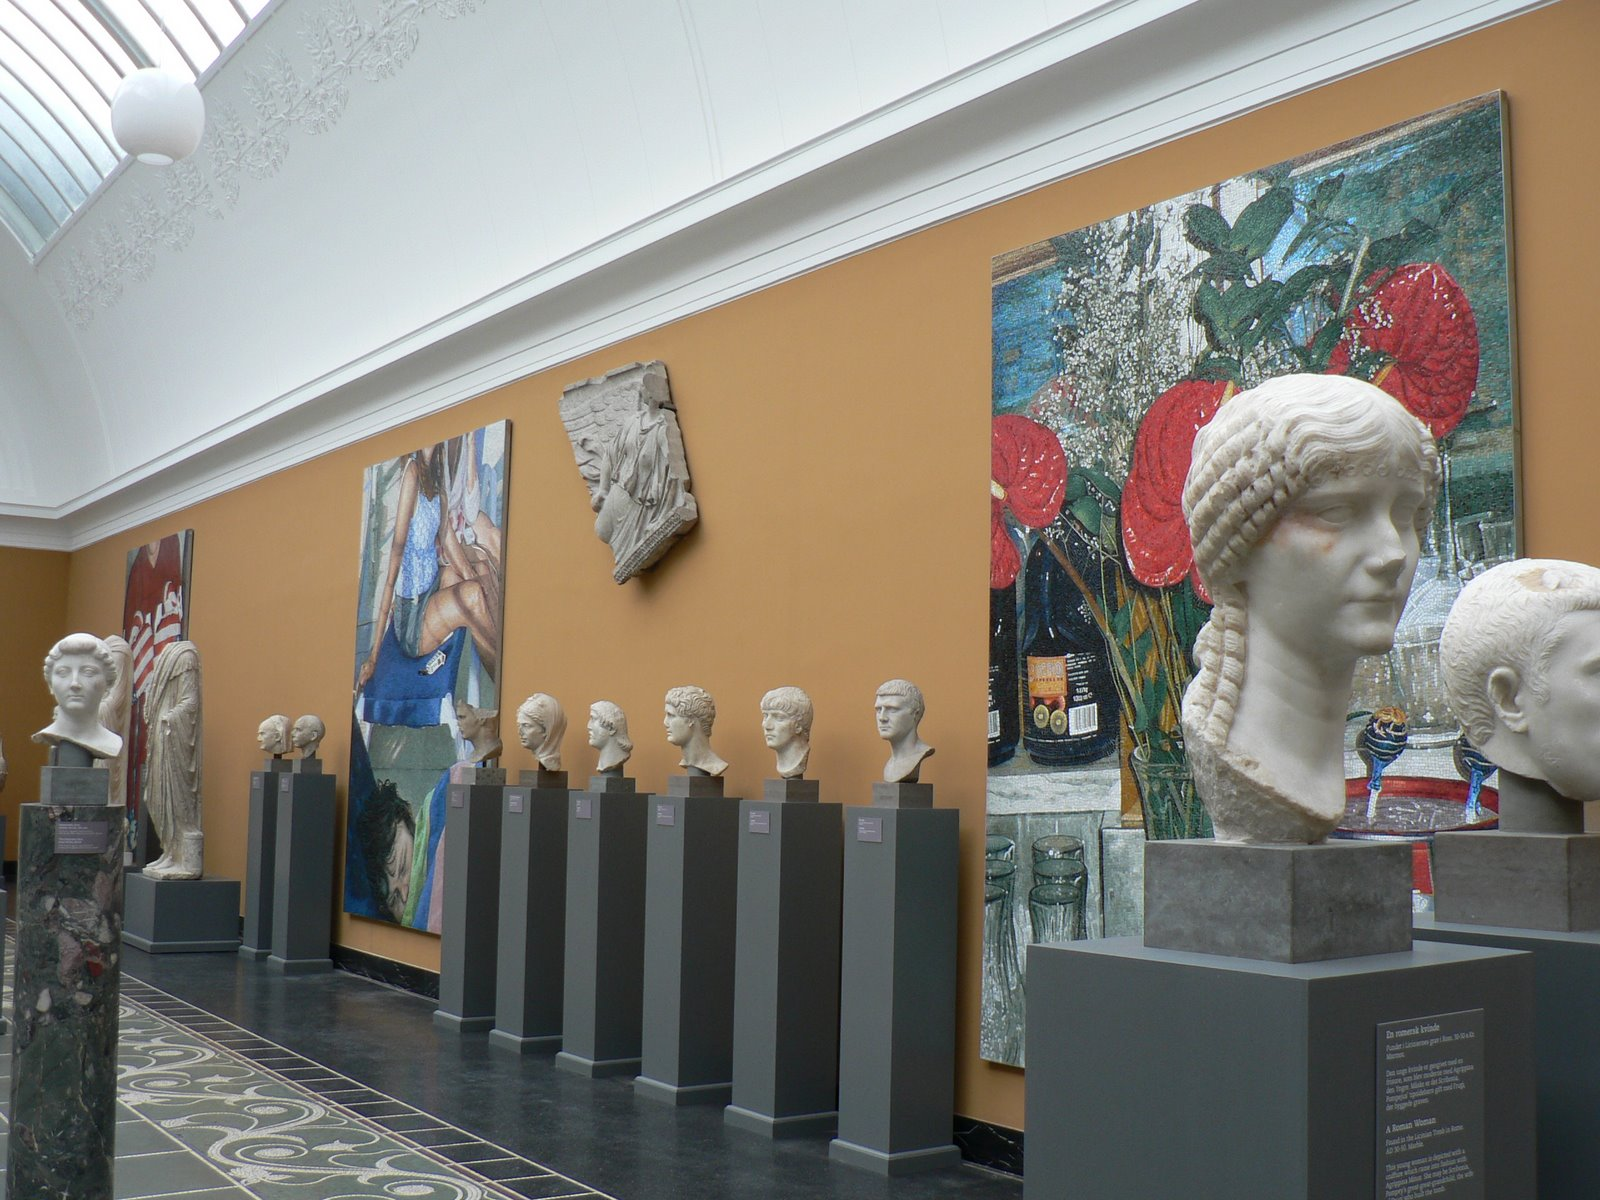 Ny Carlsberg Glyptotek, courtesy of Flickr user Pedro Layant